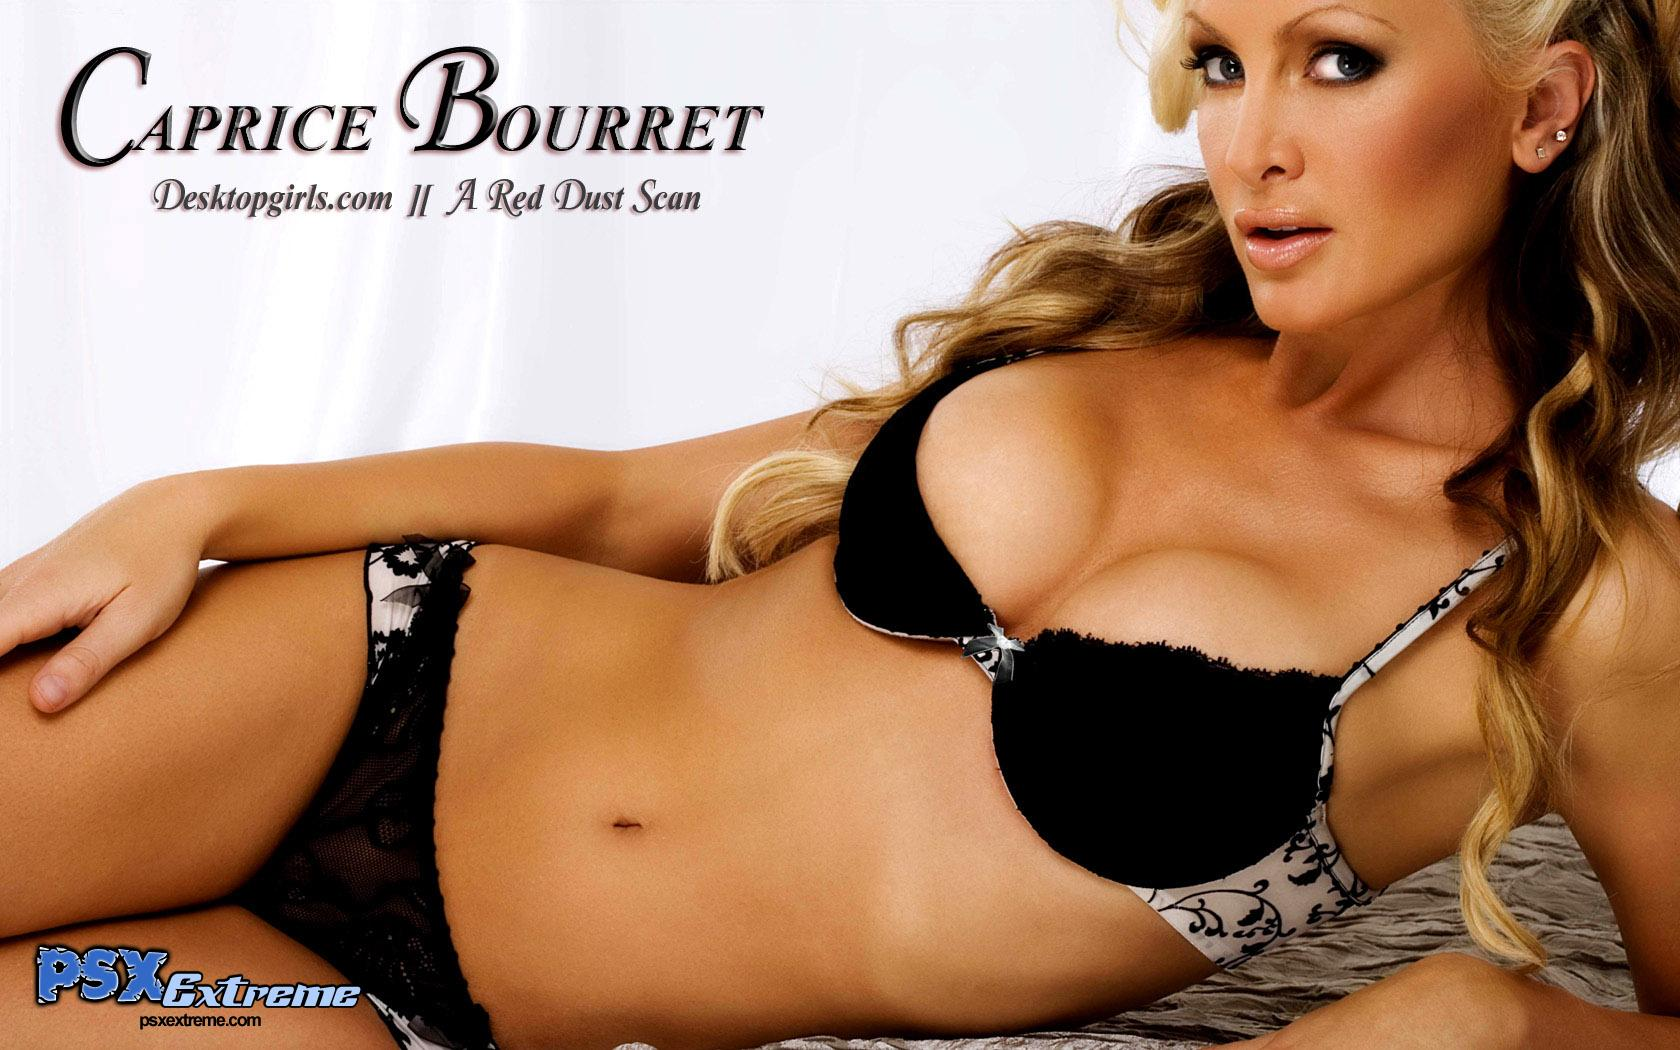 http://images.psxextreme.com/wallpapers/ps3/caprice_bourret_01.jpg